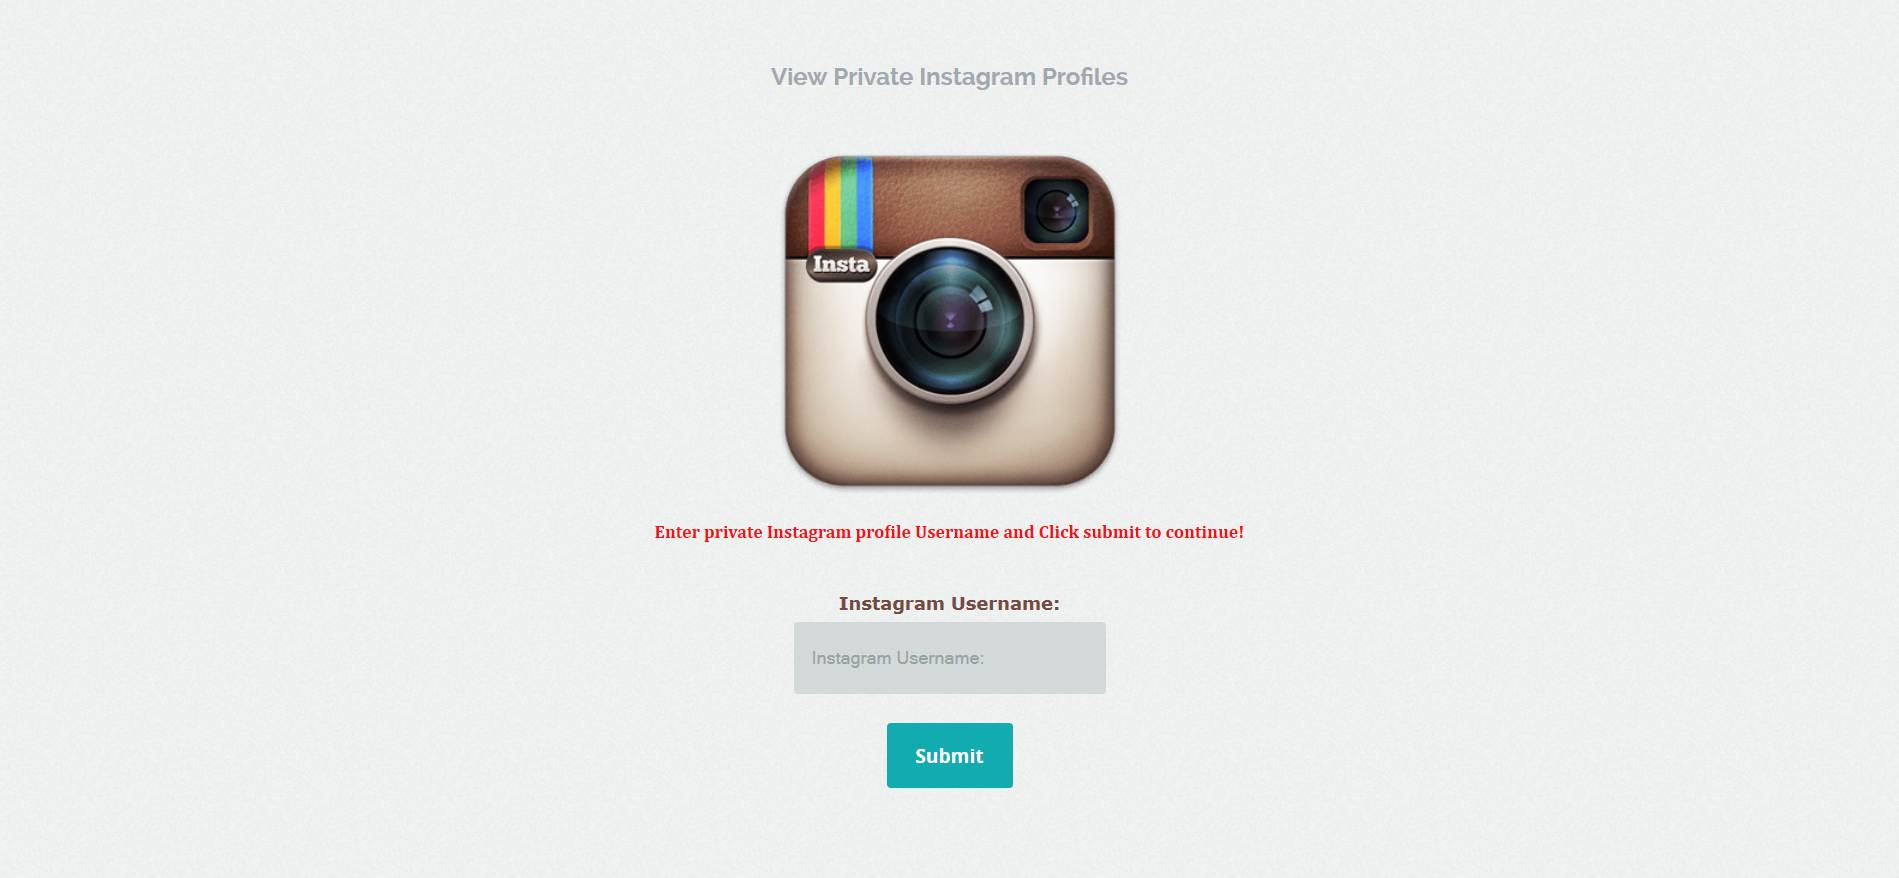 4_instagram-private-profiles-viewr-online-tool